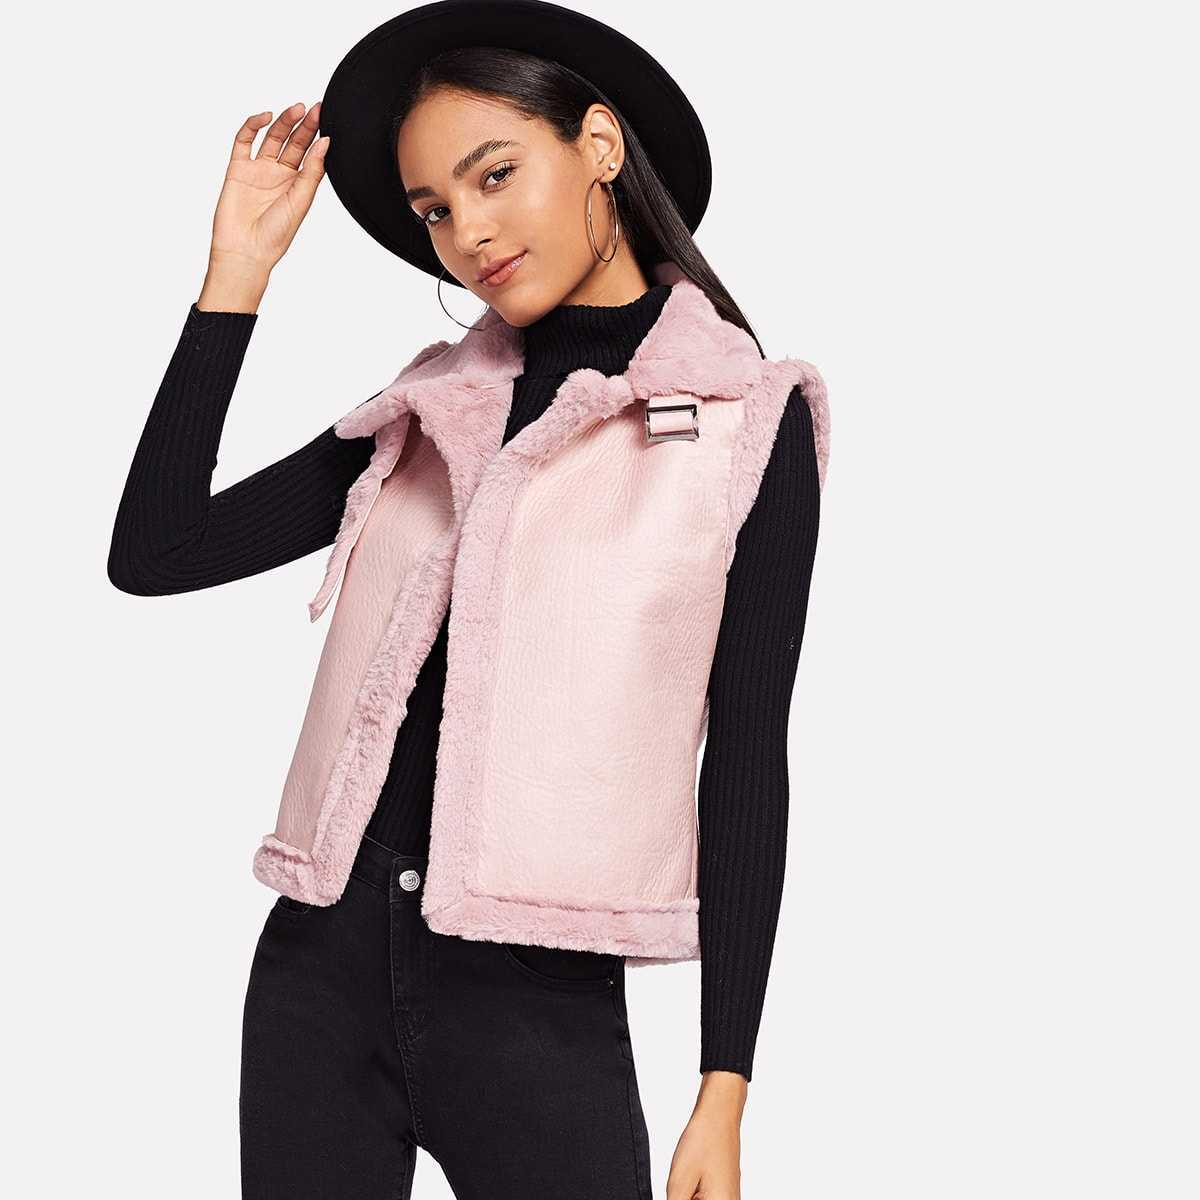 Buckle Strap Detail Faux Shearling Jacket in Pink by ROMWE on GOOFASH